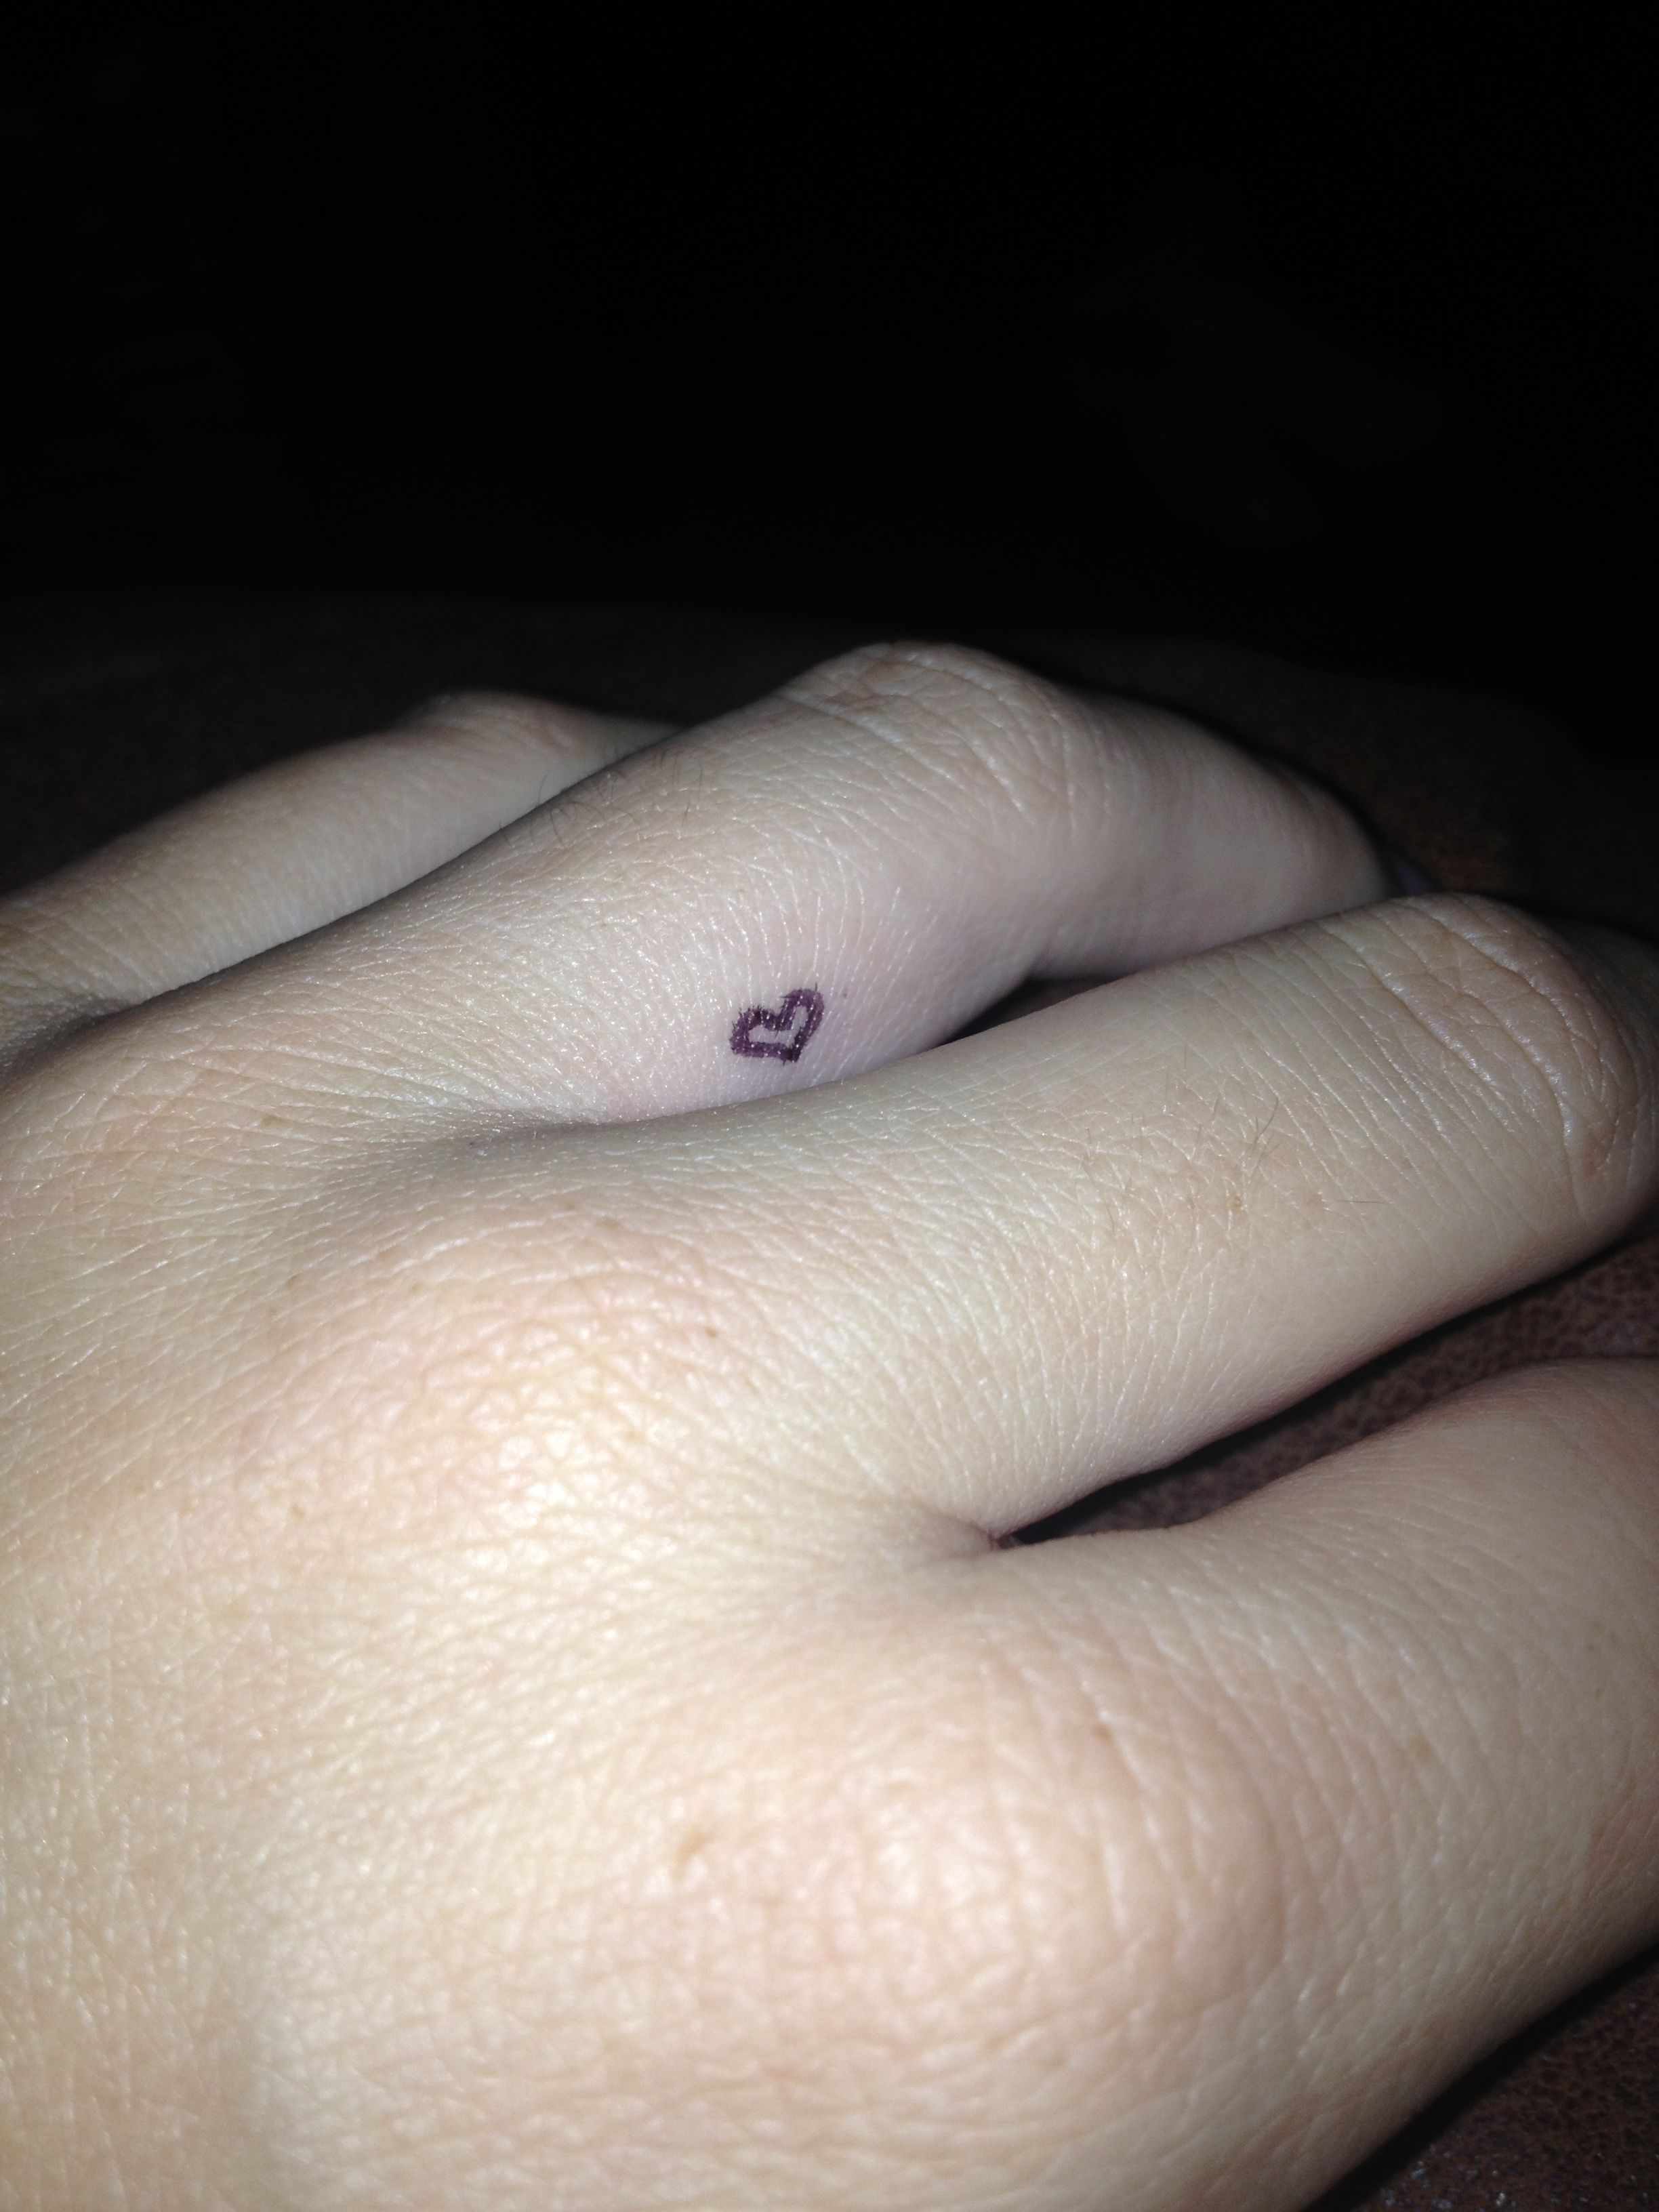 t be wedding shhh pin tattooed side on tell ring don where opposite would rings my